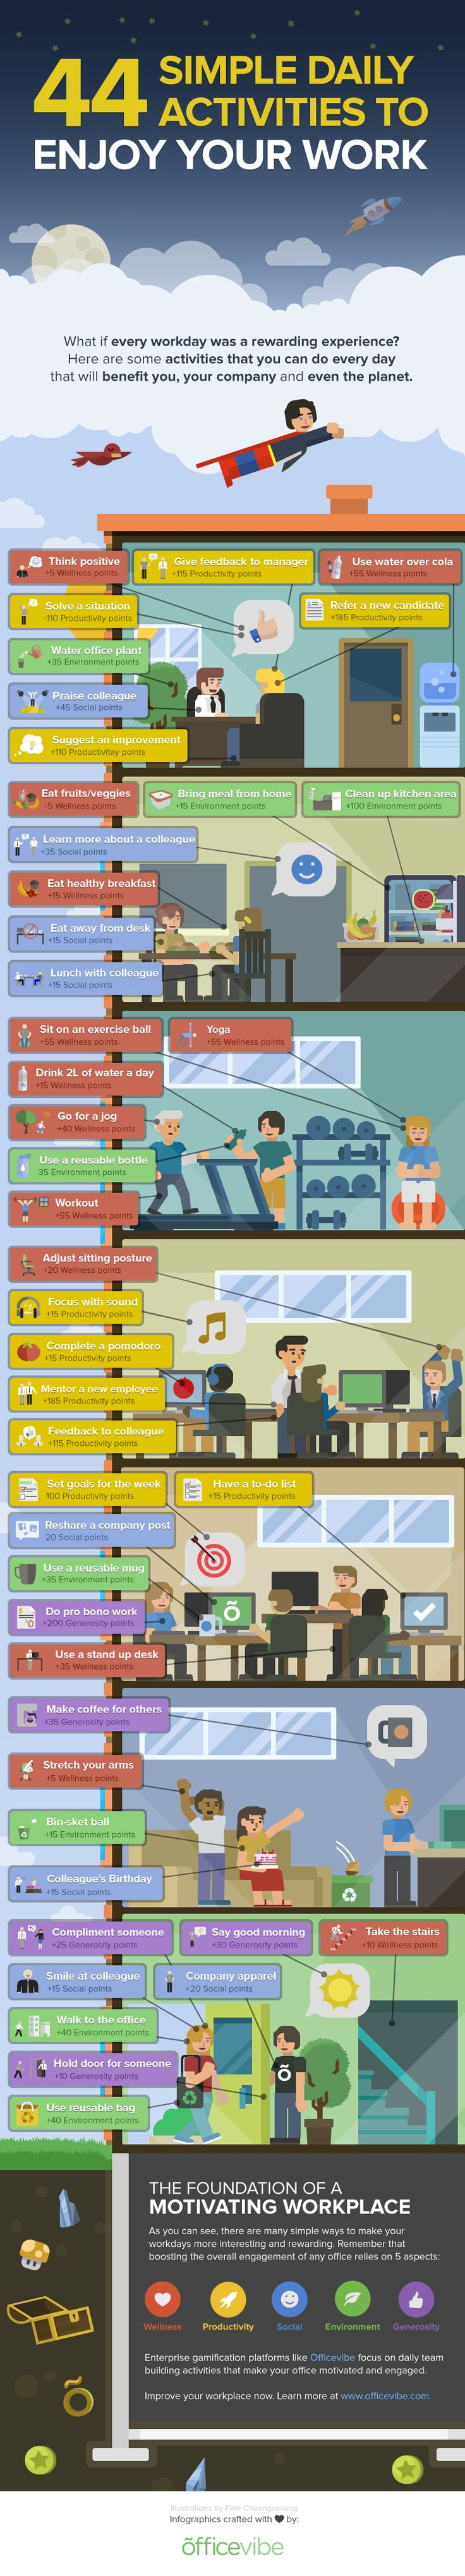 44 Simple Daily Activities To Enjoy Your Work #Infographic